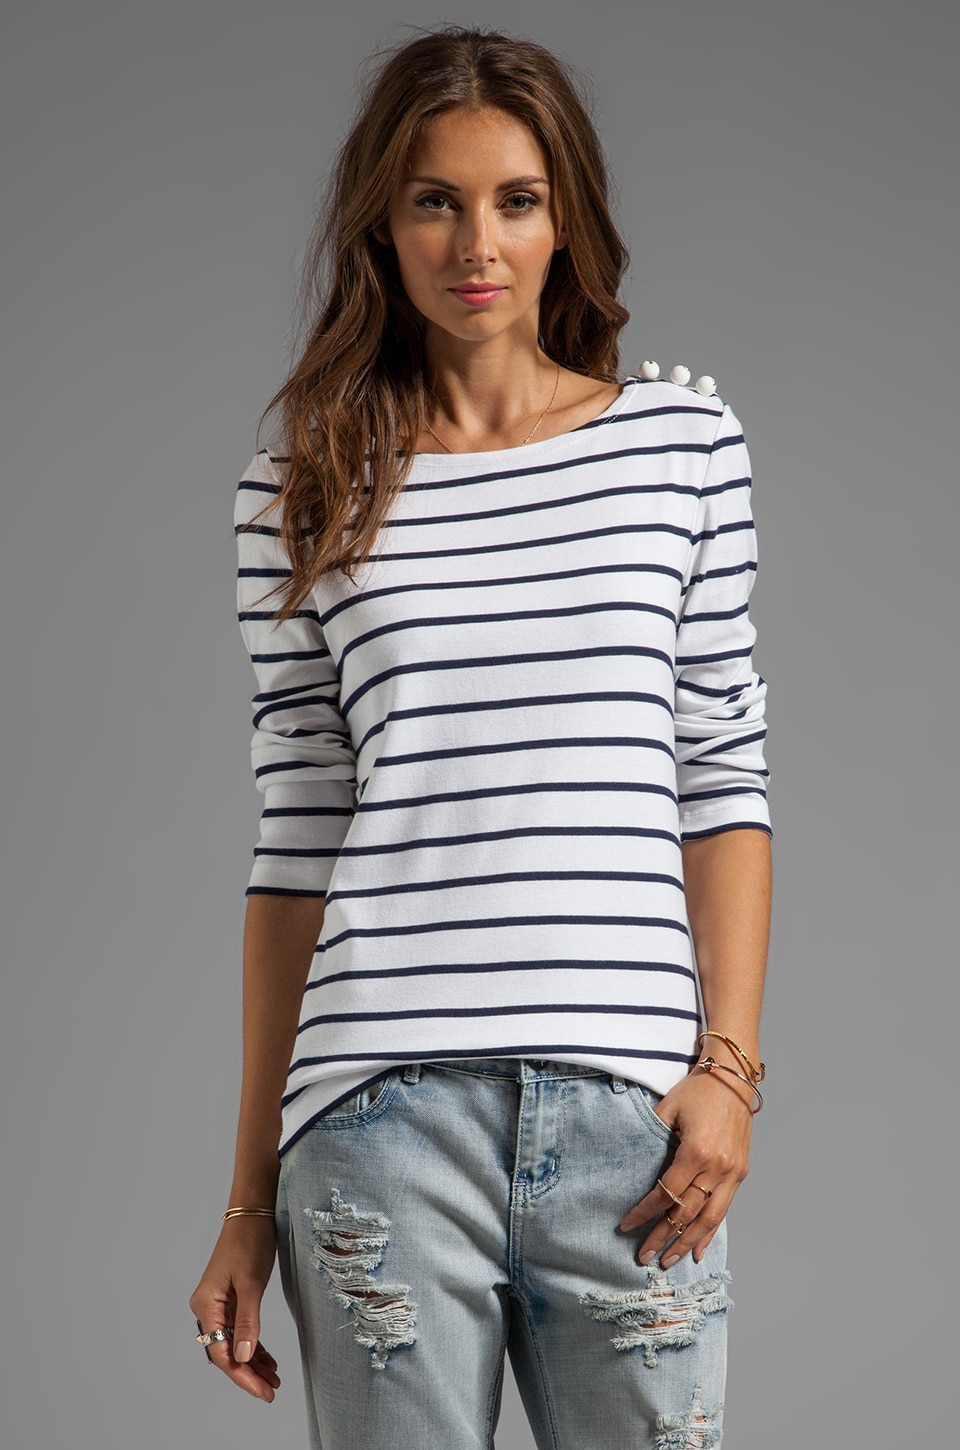 SONIA by Sonia Rykiel Tee Stripe Shirt in Blanc/Encre